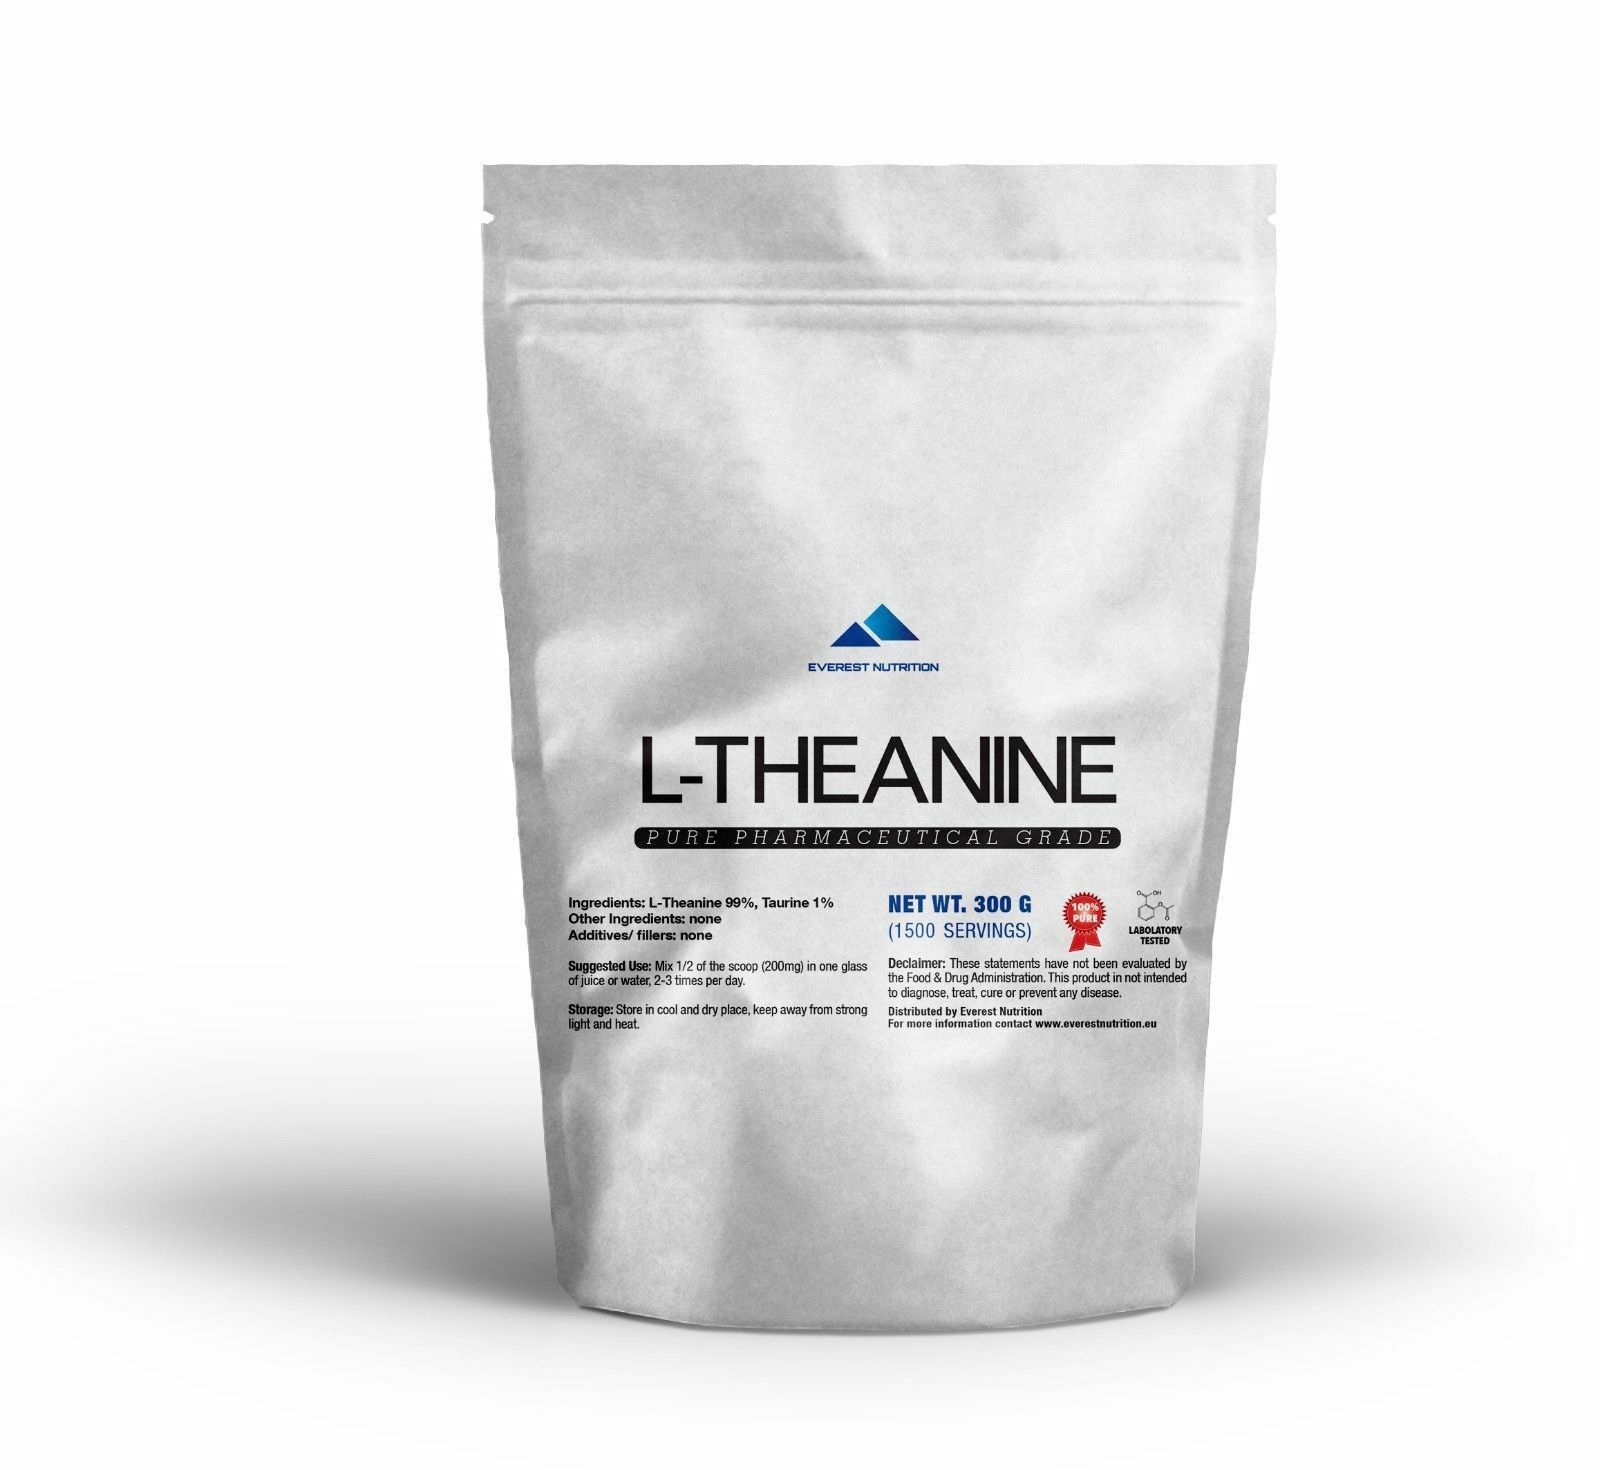 L-Theanine Pure Pharmaceutical Stress, Powder, ROTuce Stress, Pharmaceutical Improve Sleep. 4ca2f4